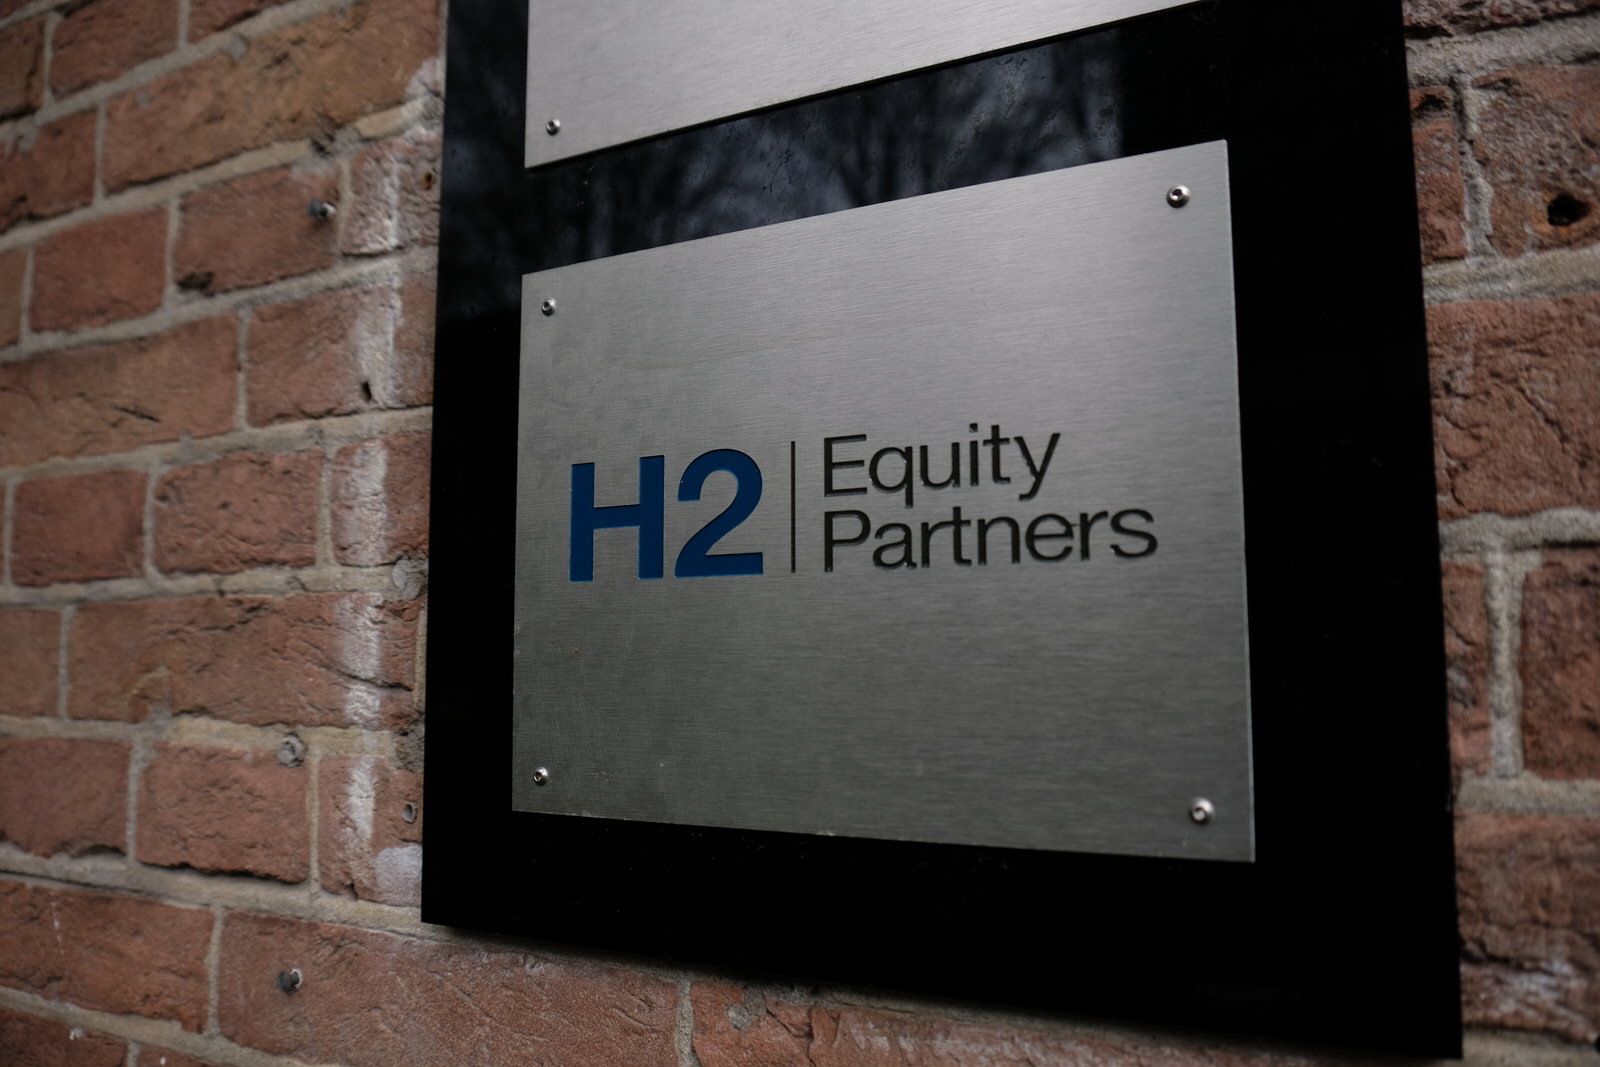 H2 Equity Partners' Amsterdam headquarters.